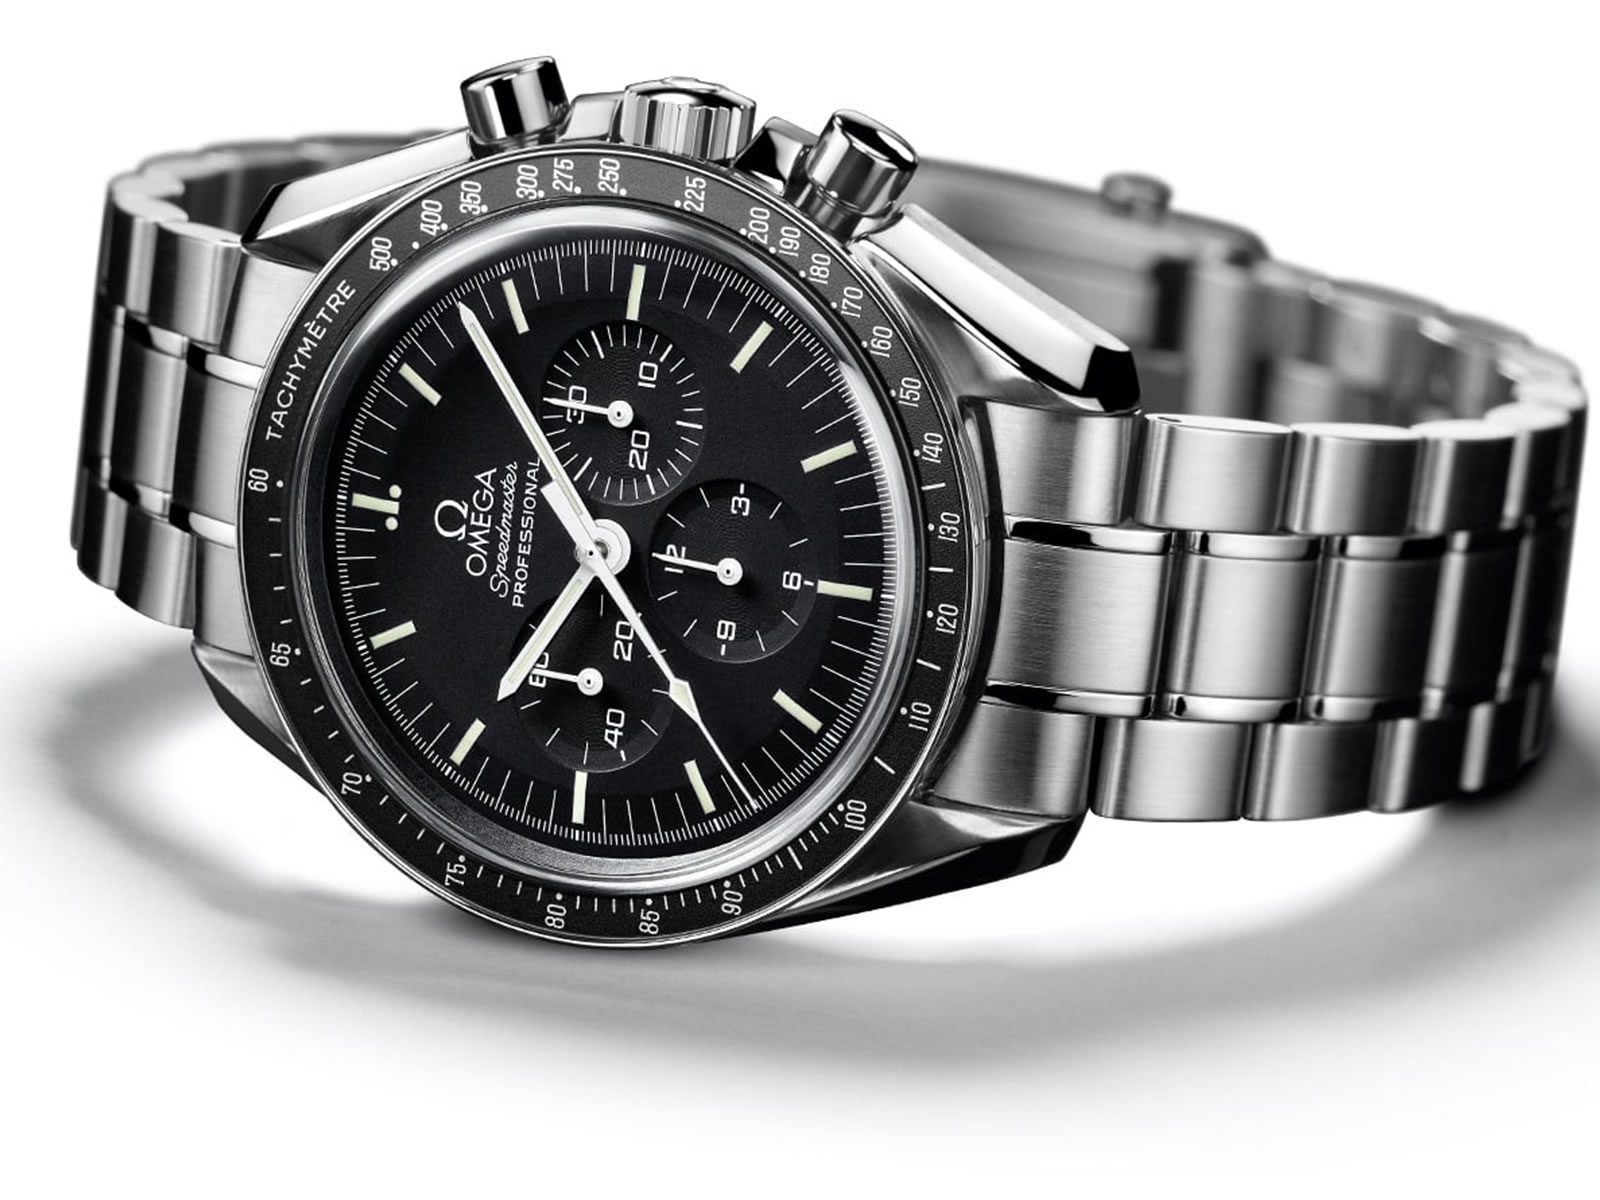 311-30-42-30-01-005-omega-speedmaster-moonwatch-professional-chronograph-.jpg